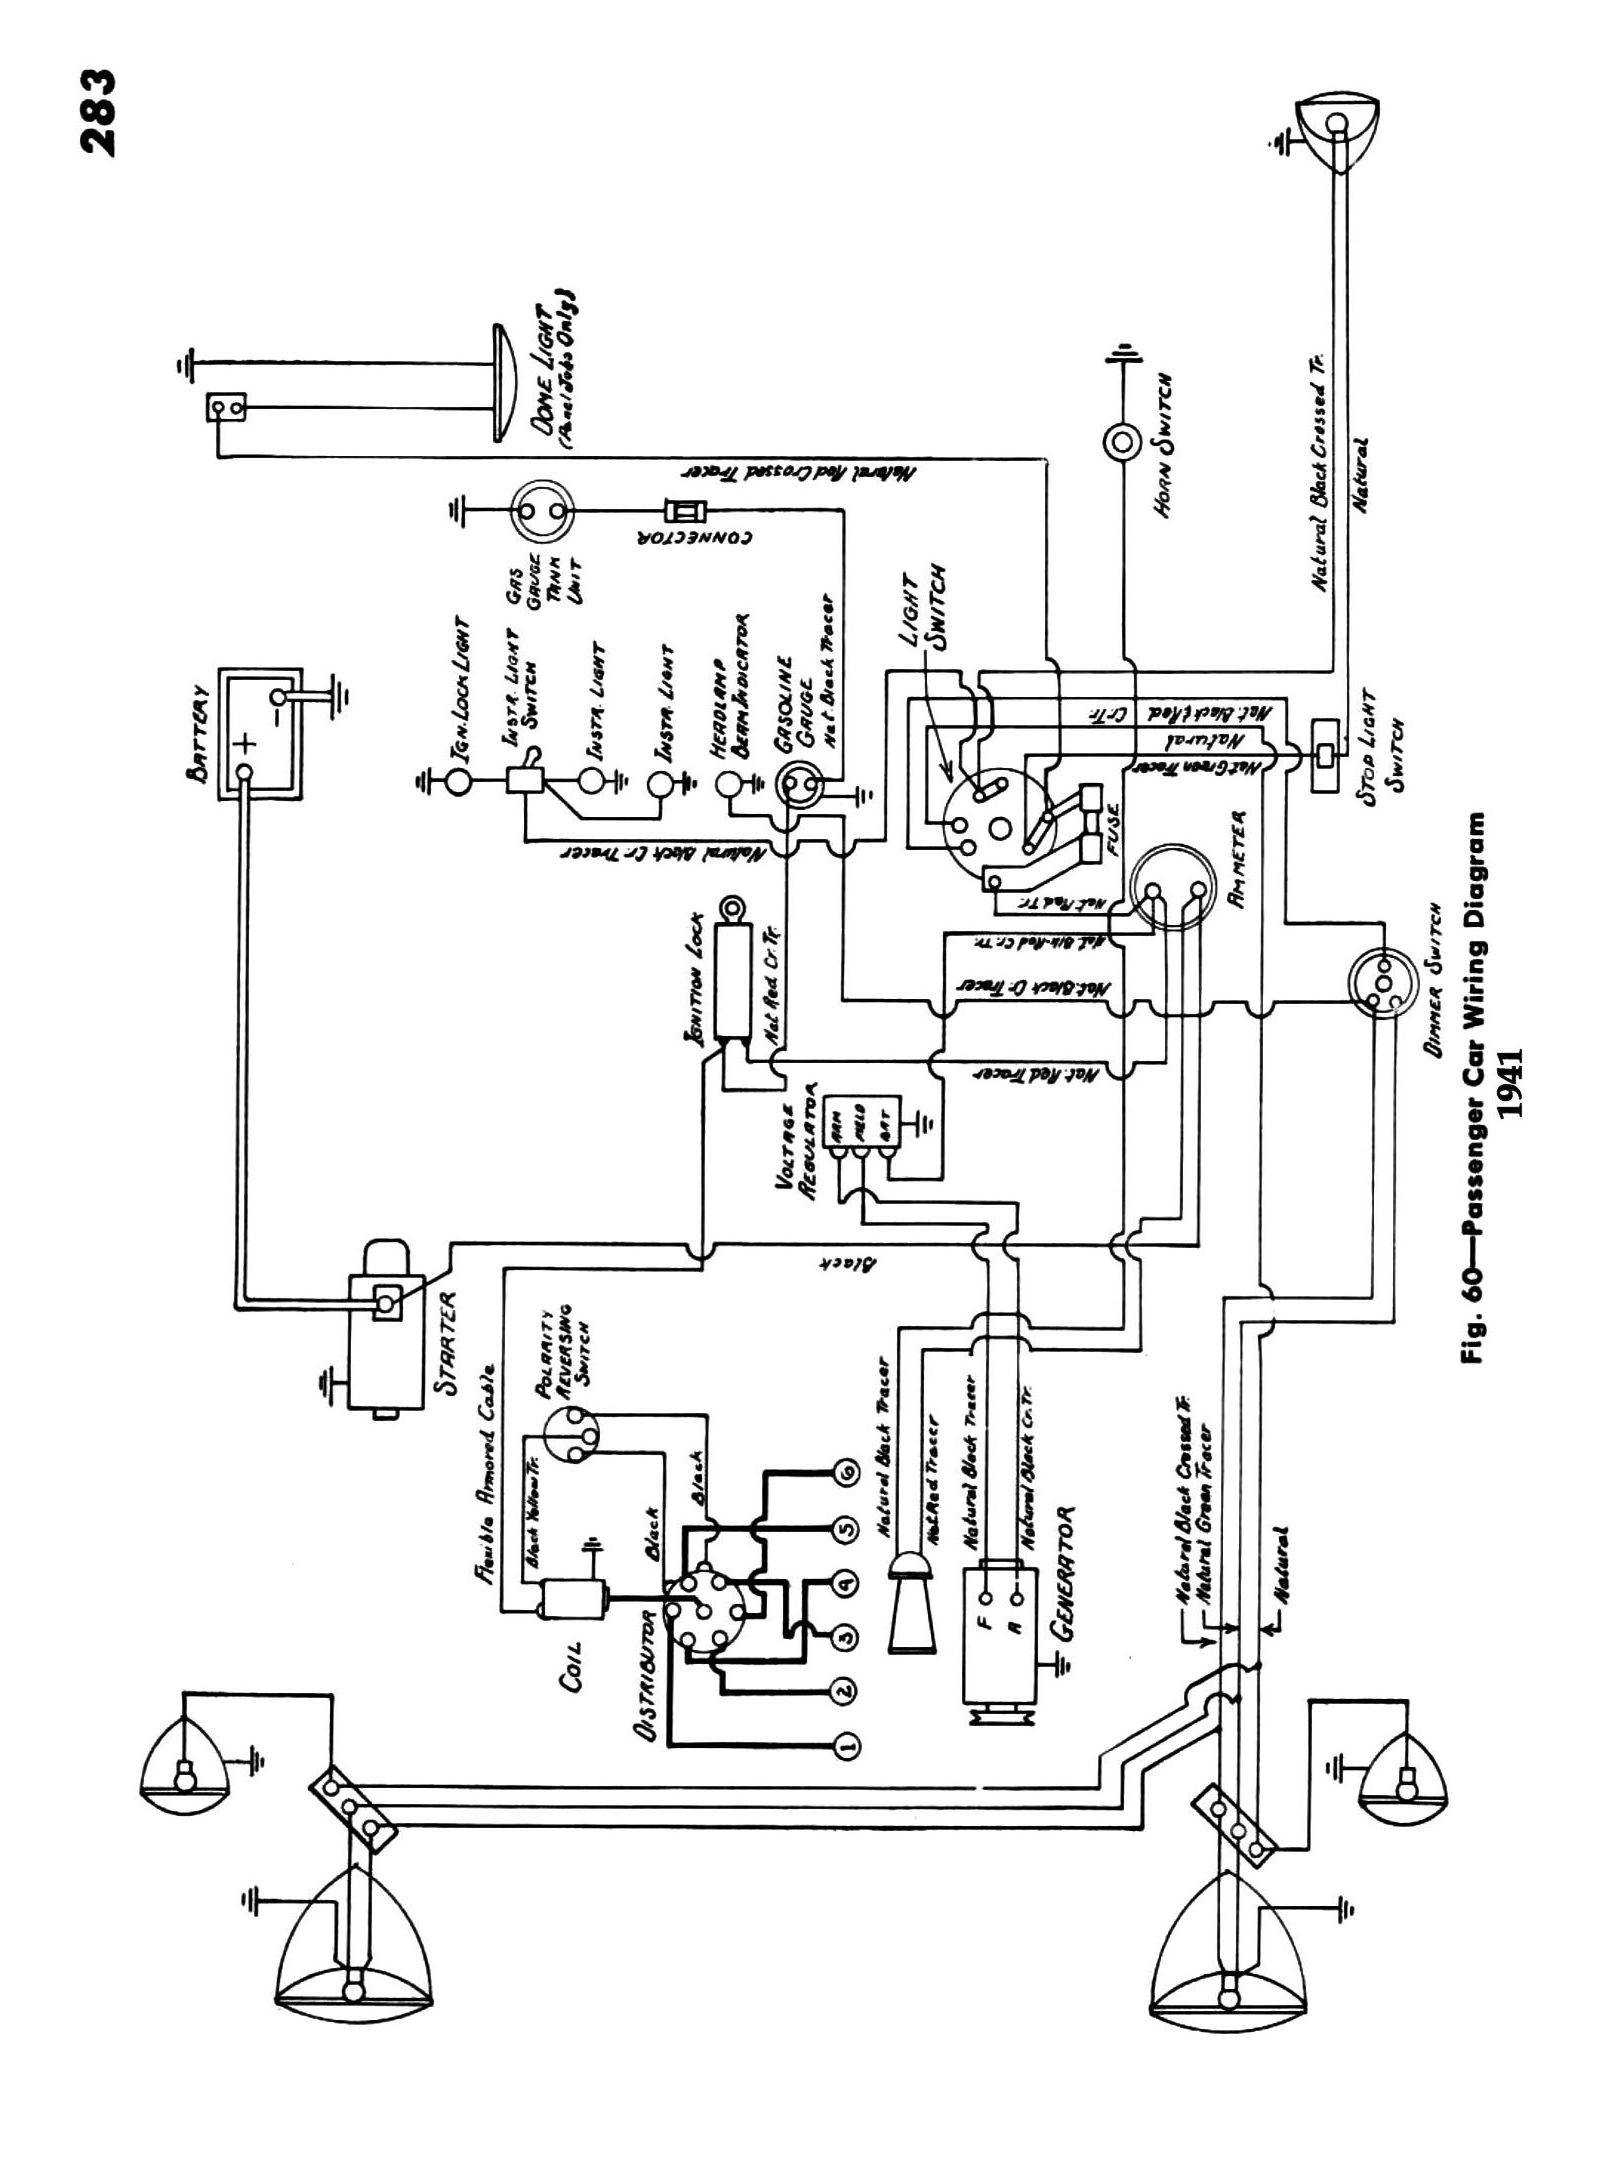 1930 plymouth wiring diagram image wiring diagram engine